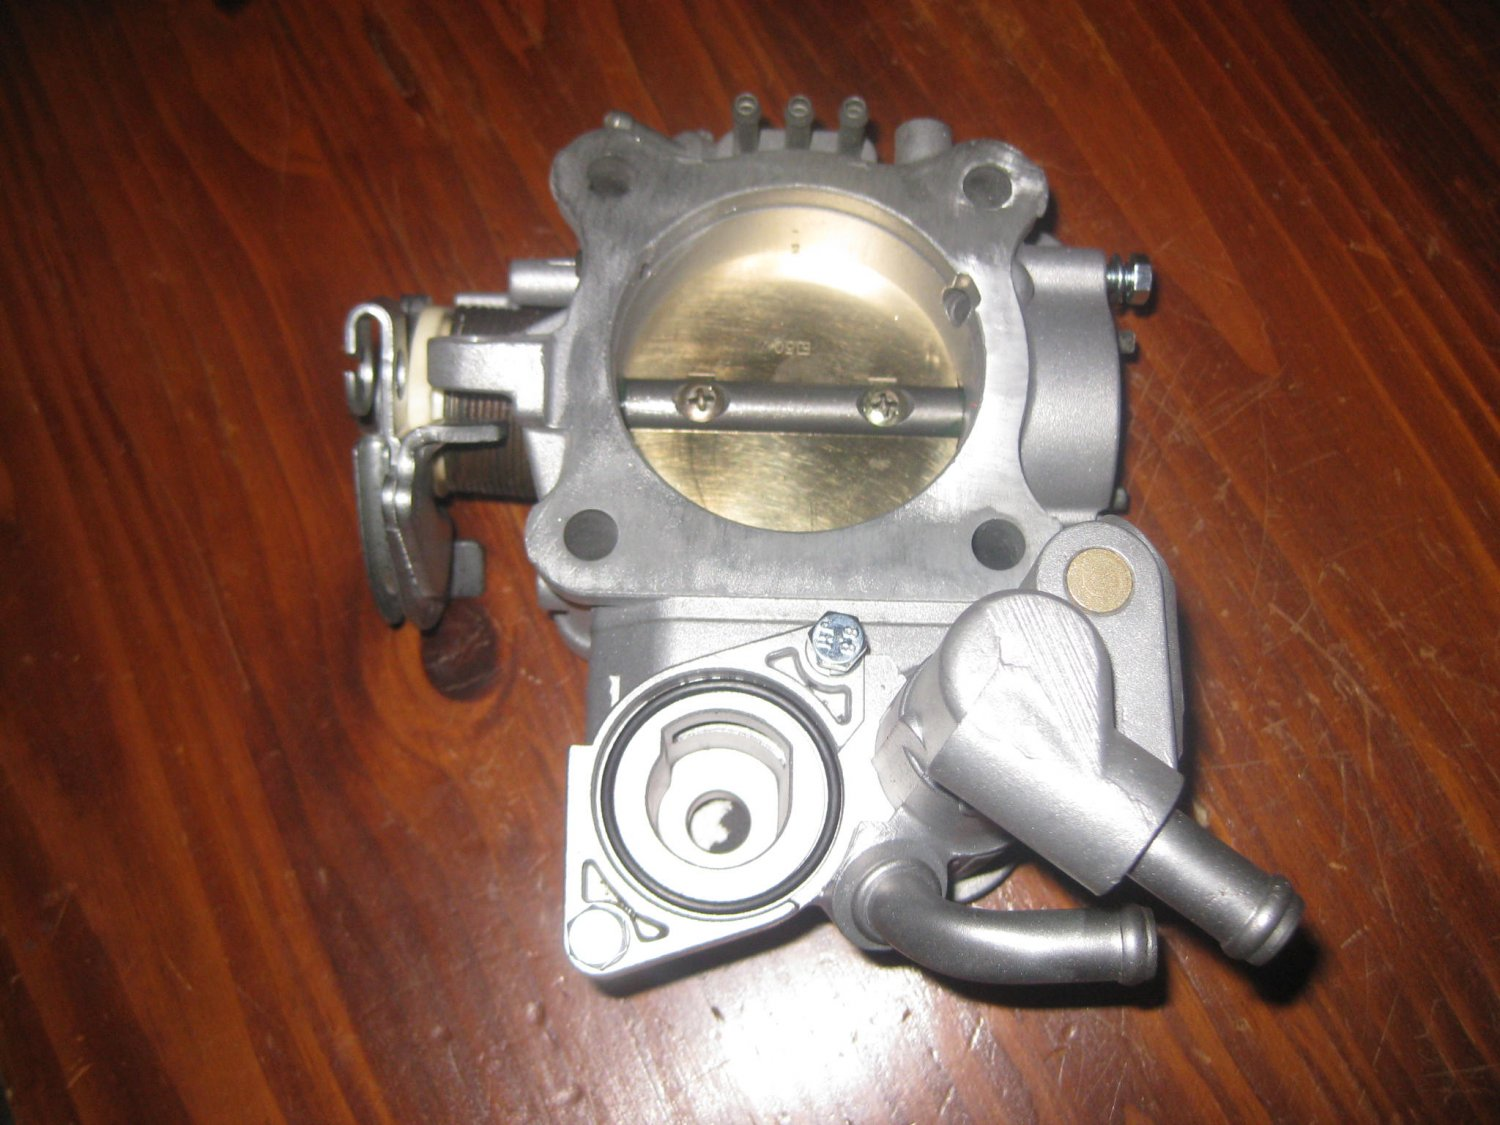 Eclipse Talon Rebuilt 91-94 Dsm Turbo Throttle Body VR4